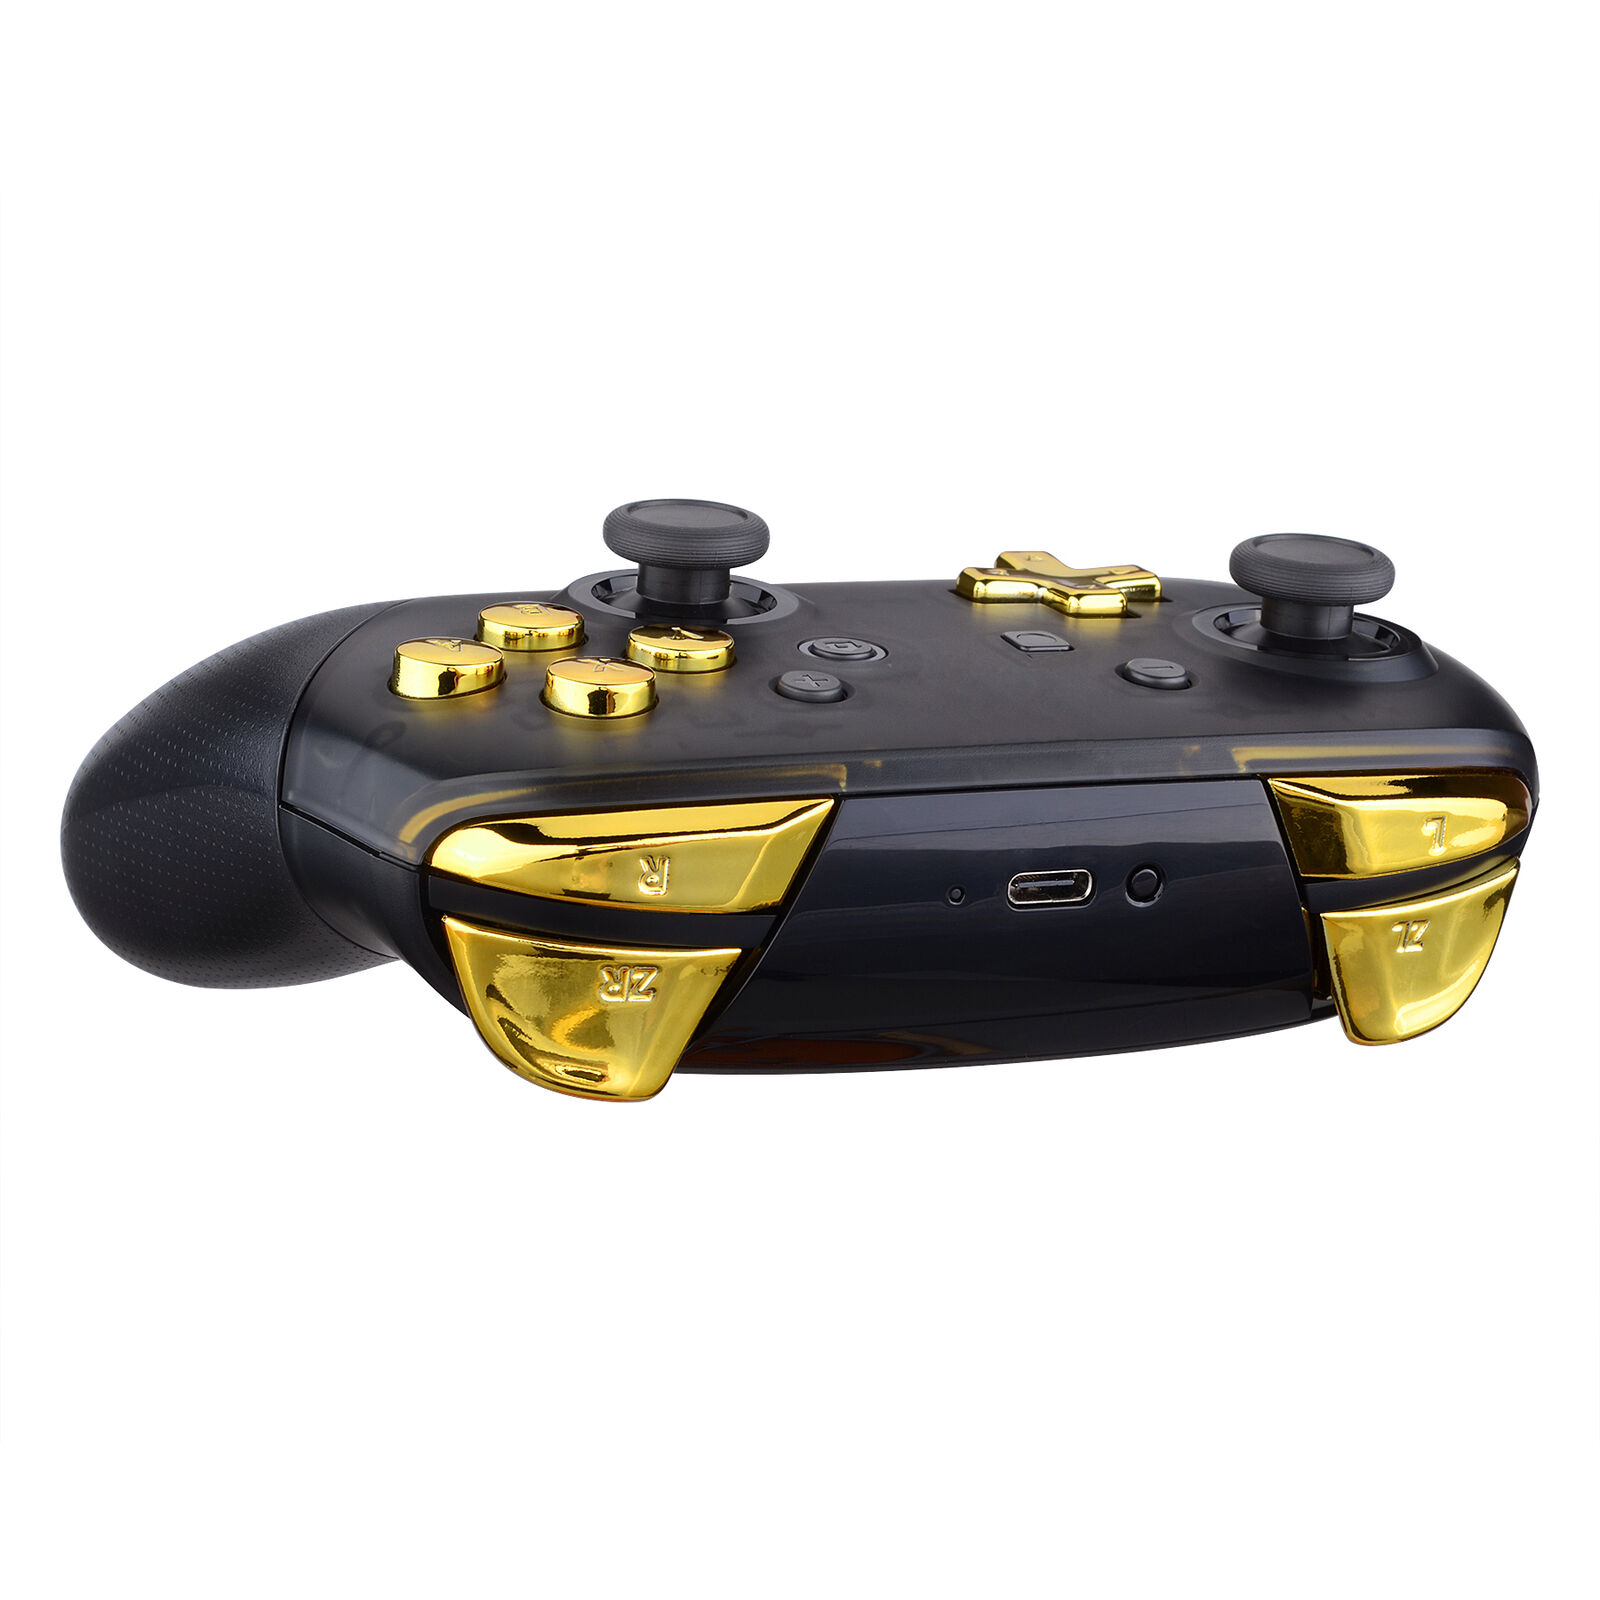 Nintendo Switch Pro Controller Black and Chrome Gold Buttons